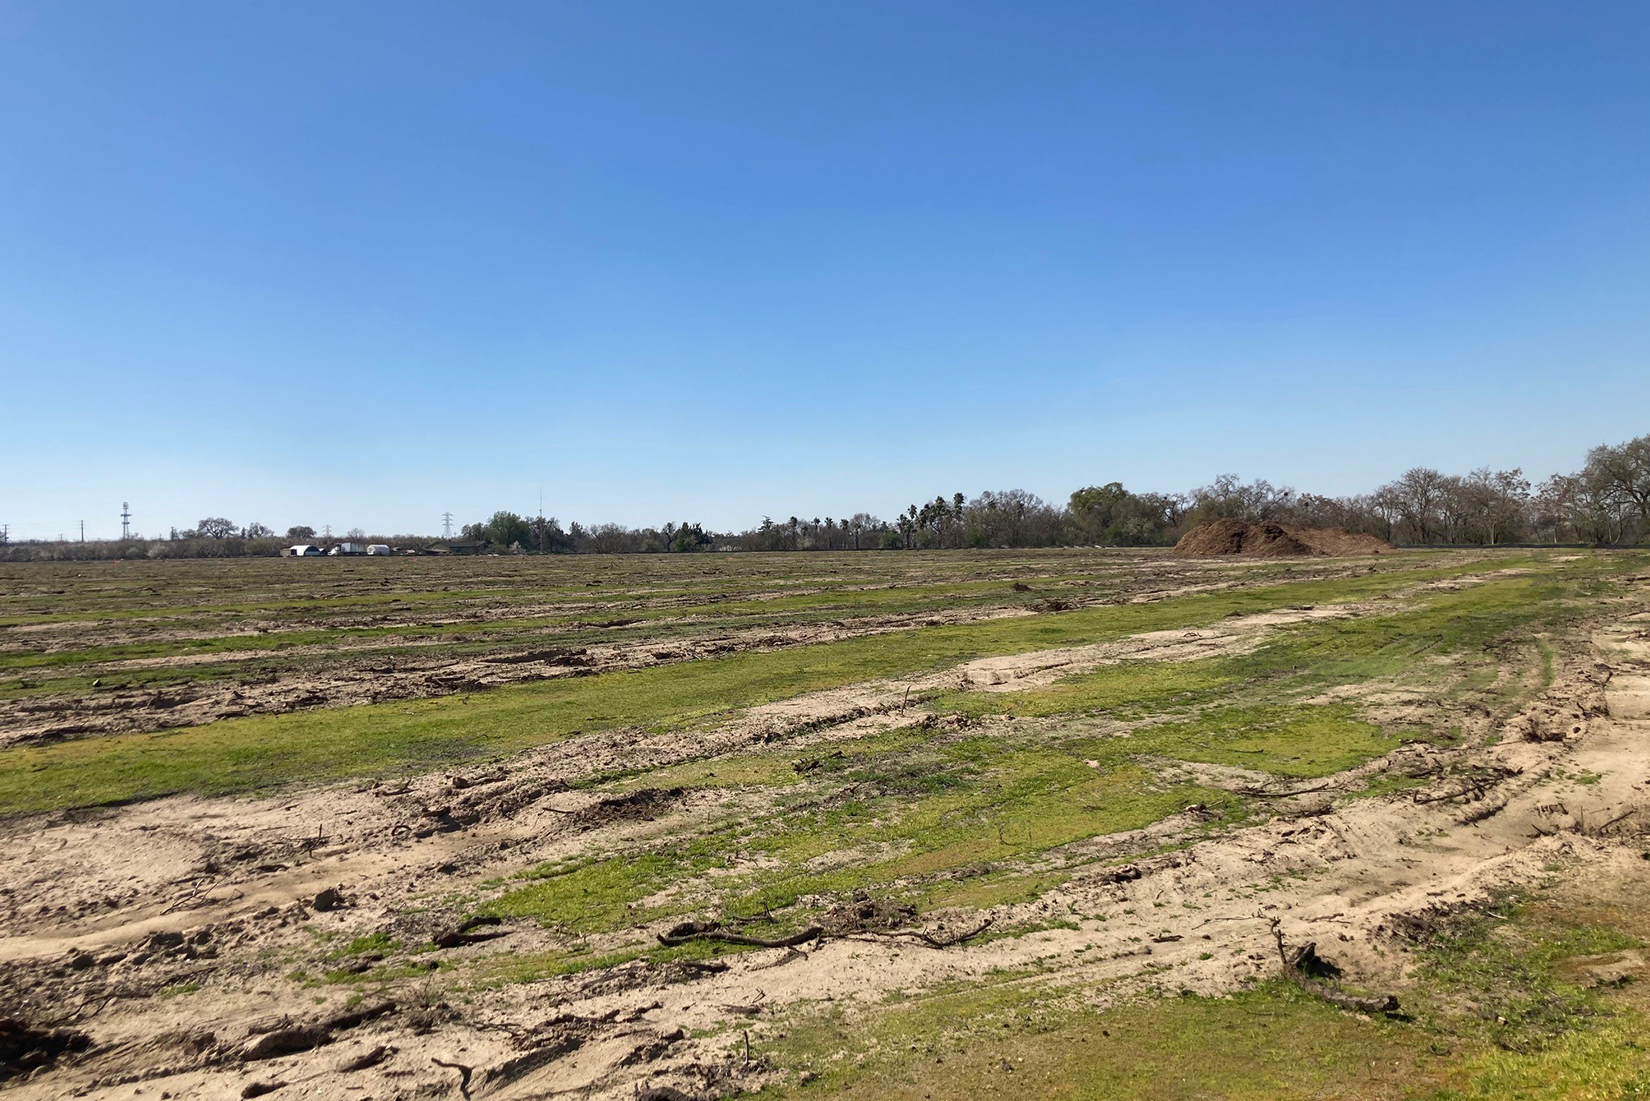 Site clearing is underway at the Water Treatment Plant site